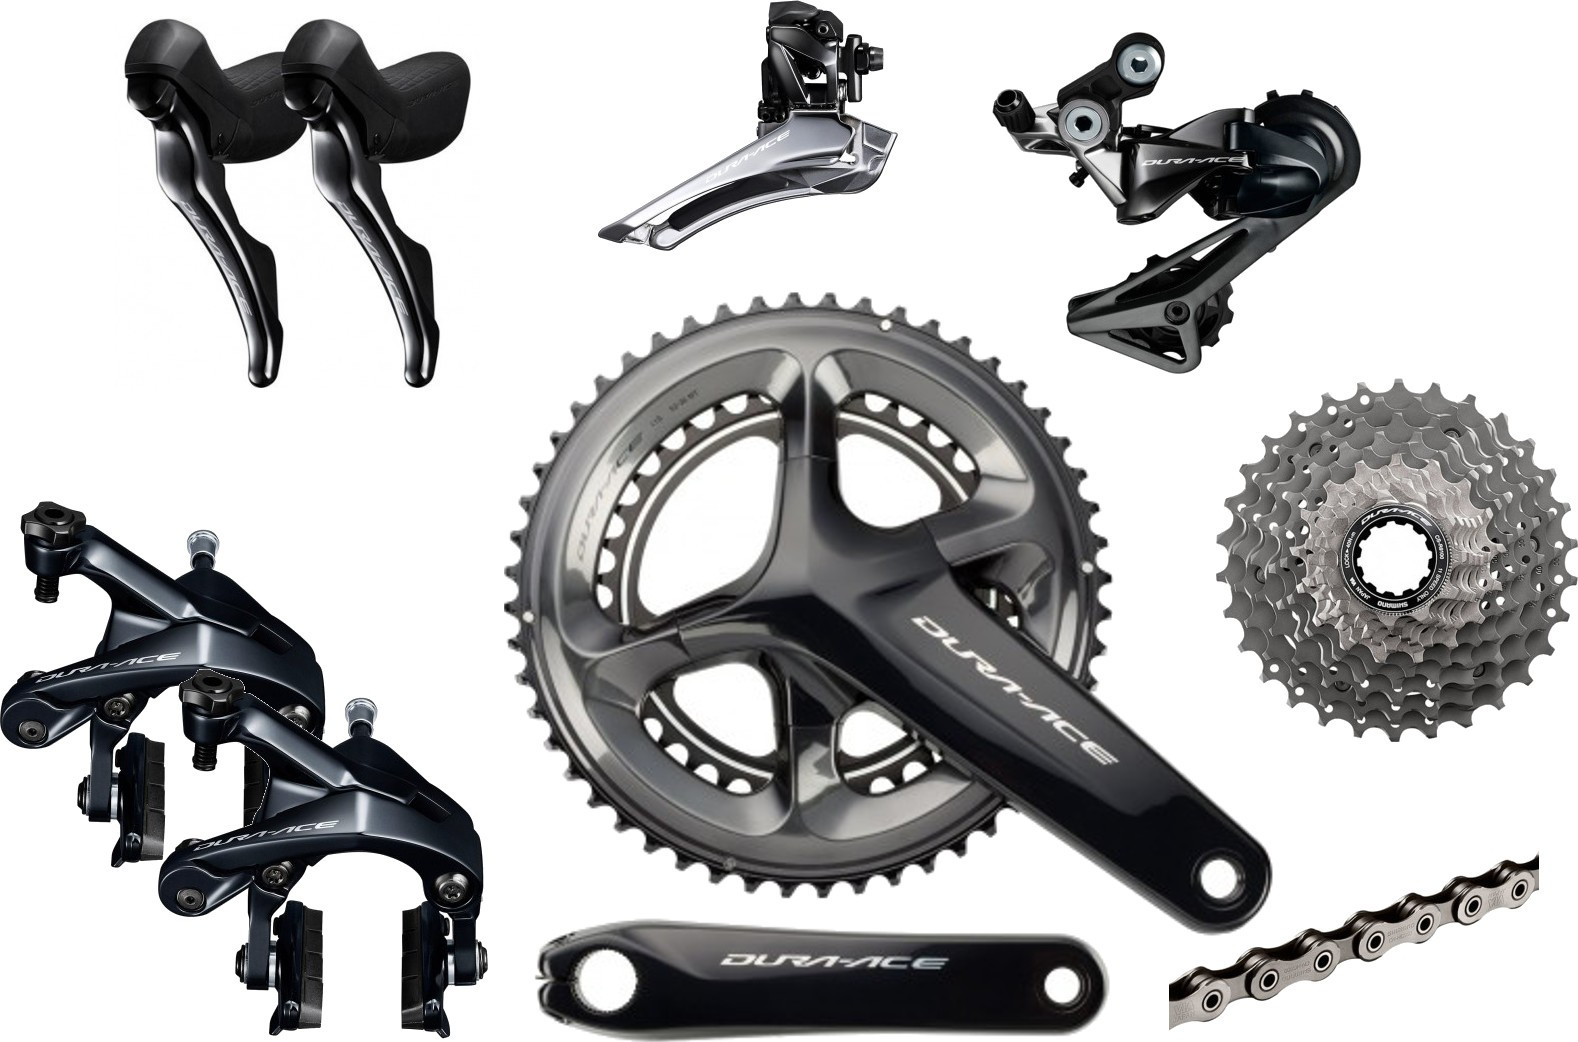 Shimano Dura-Ace R1900 Road Groupset